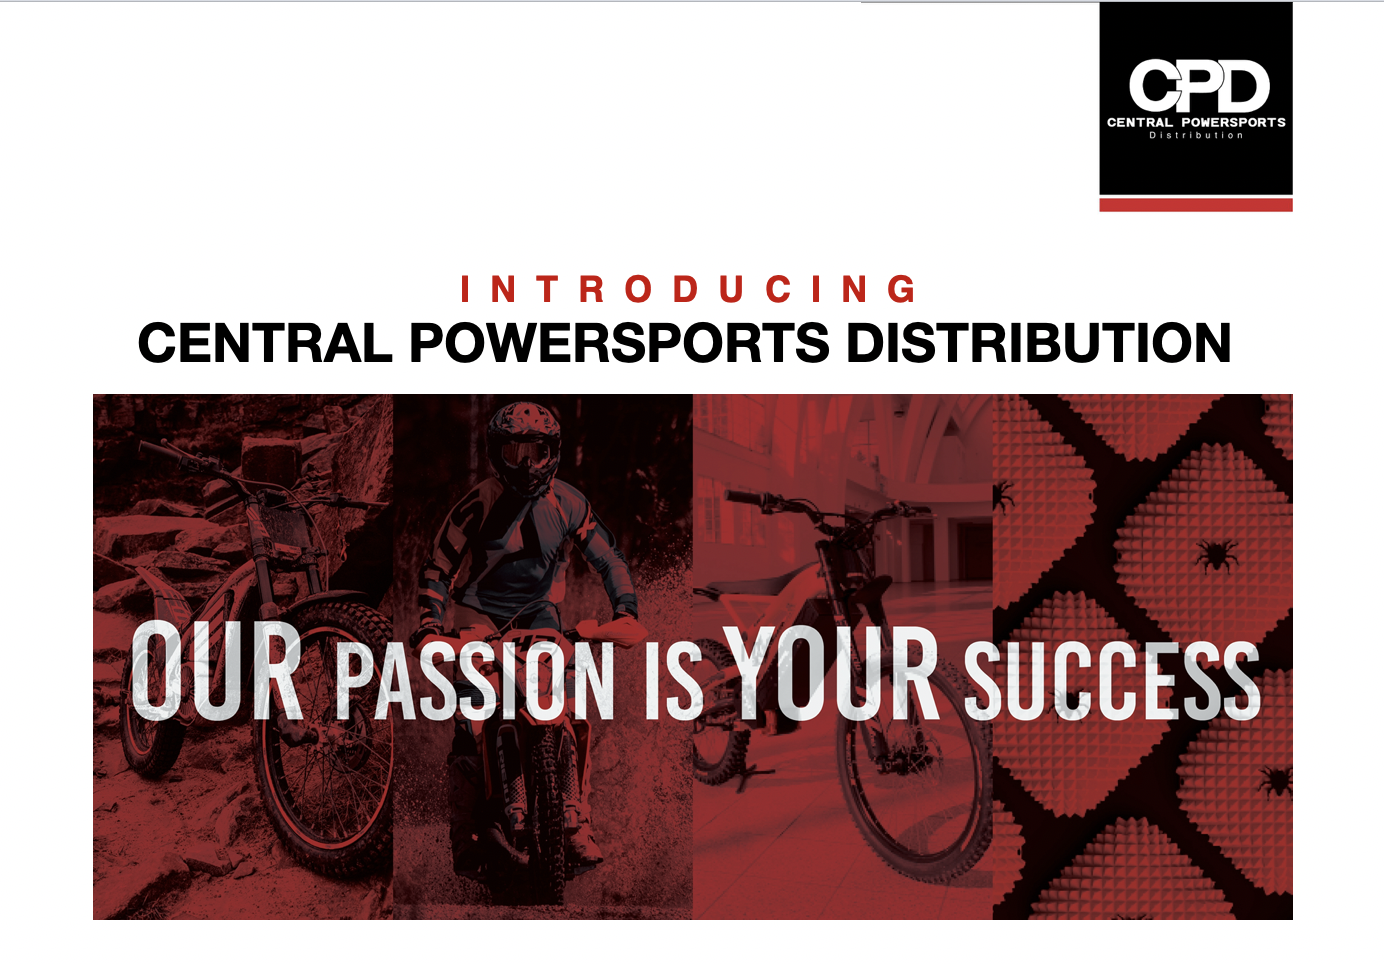 Central Powersports Distribution